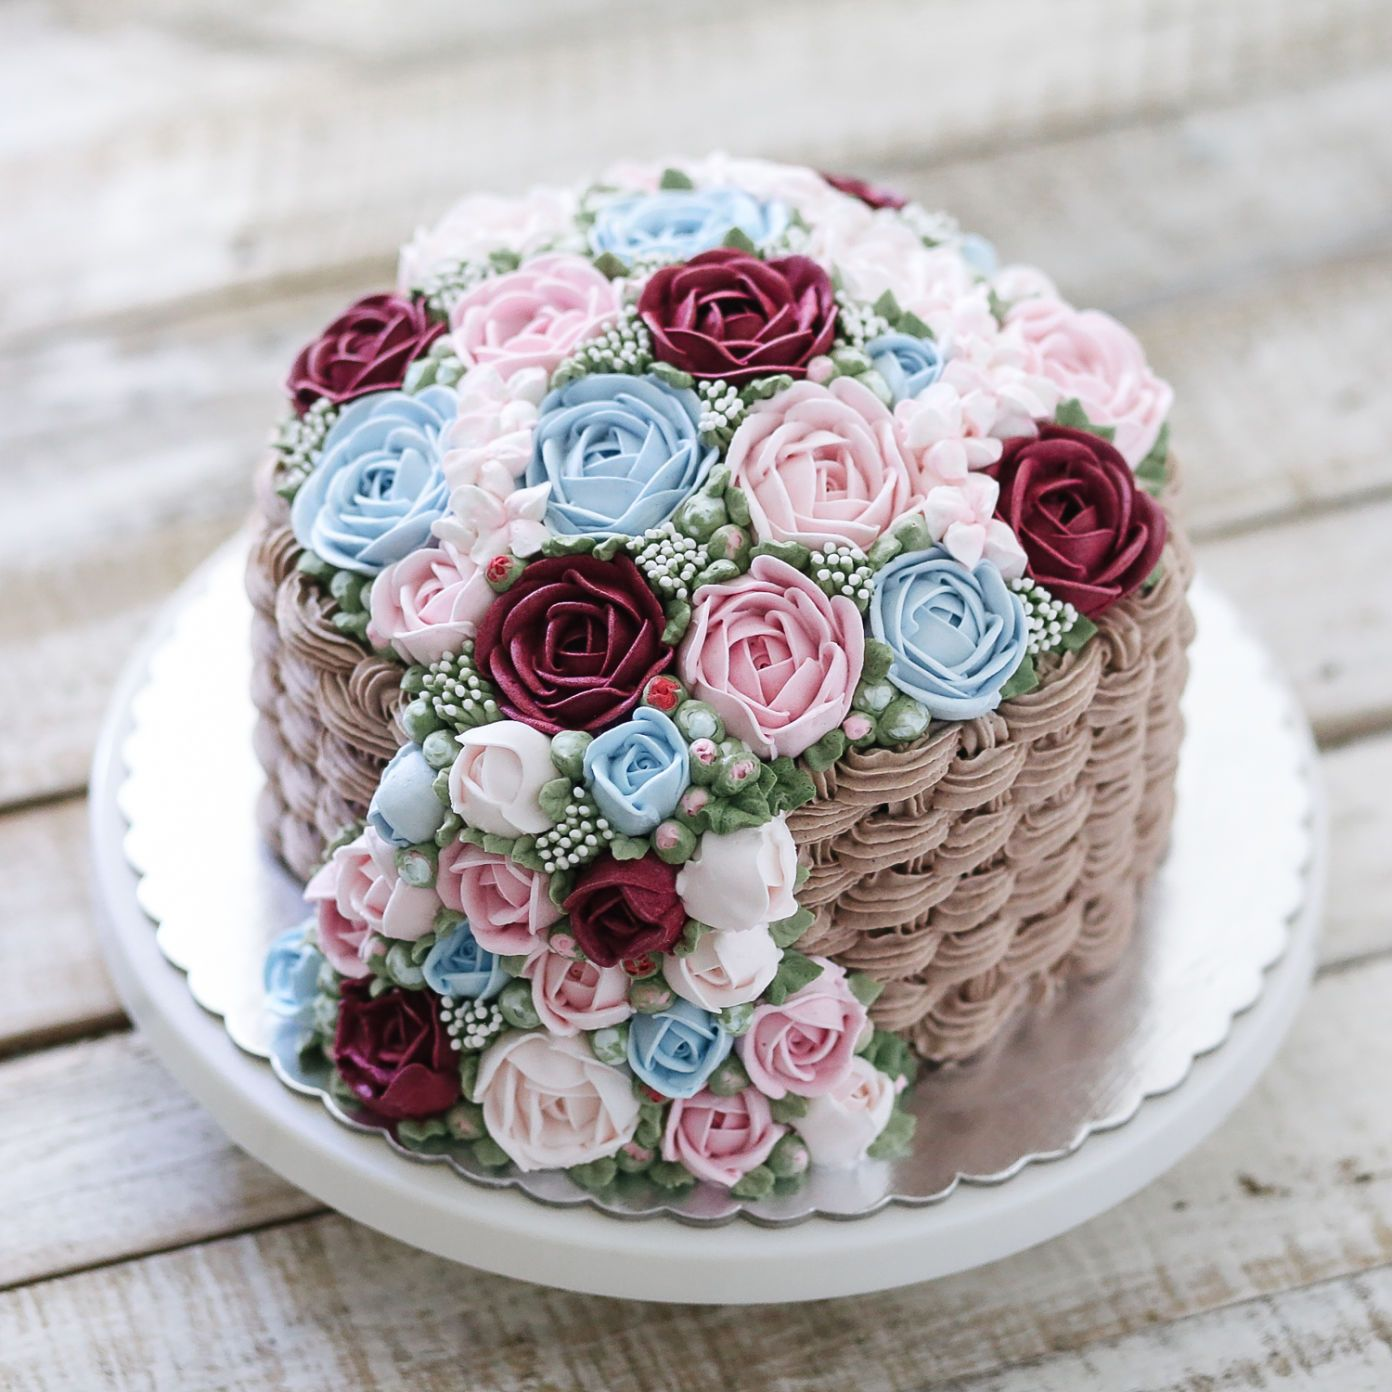 Anniversary or birthday cake by ivenoven 011 food art idea anniversary or birthday cake by ivenoven 011 izmirmasajfo Image collections